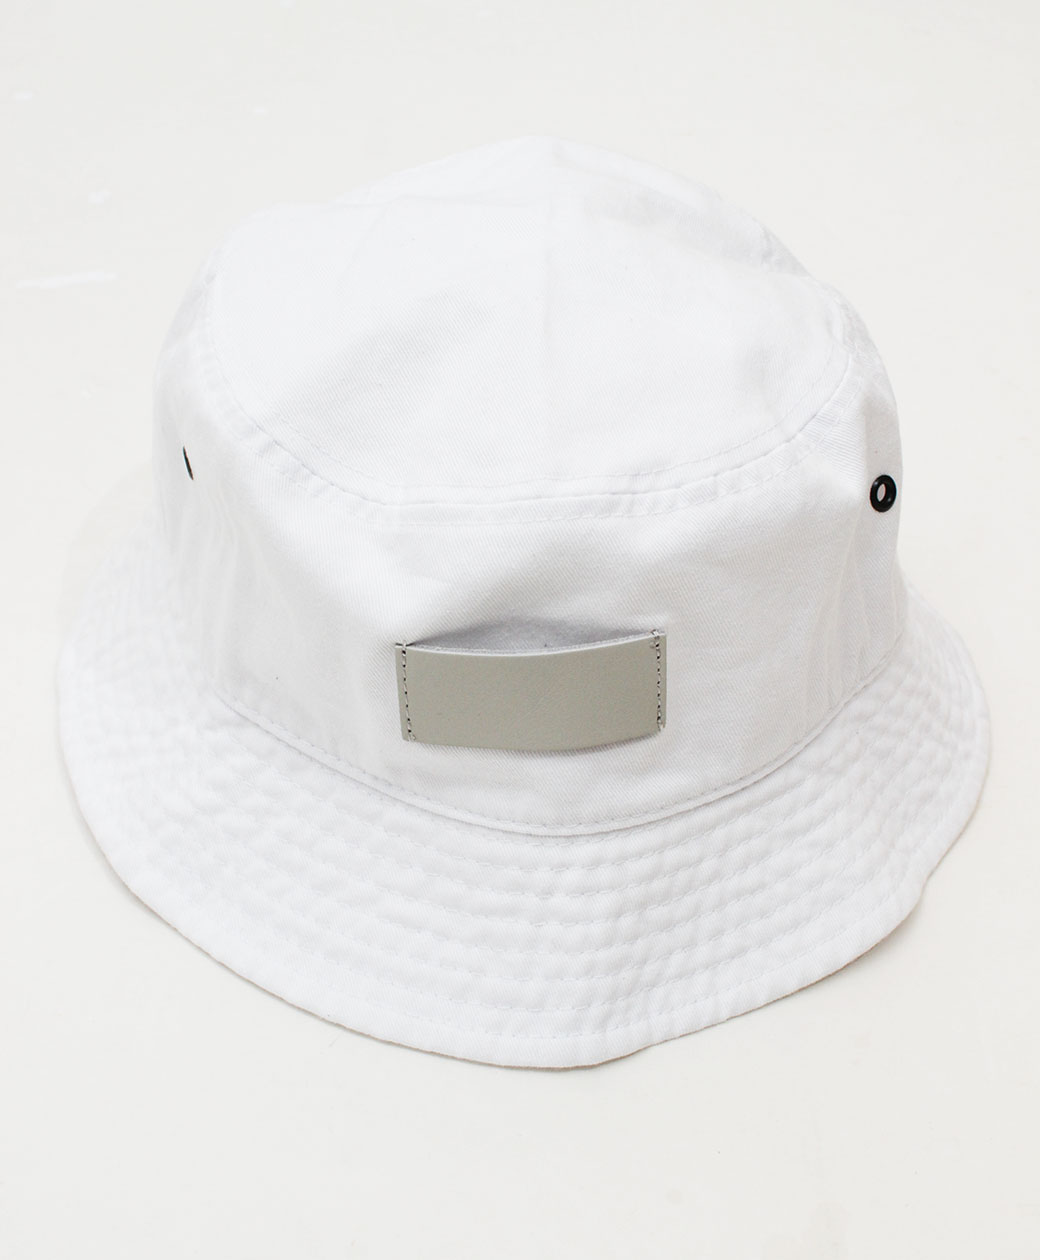 hobo COTTON TWILL BUCKET HAT(WHITE)